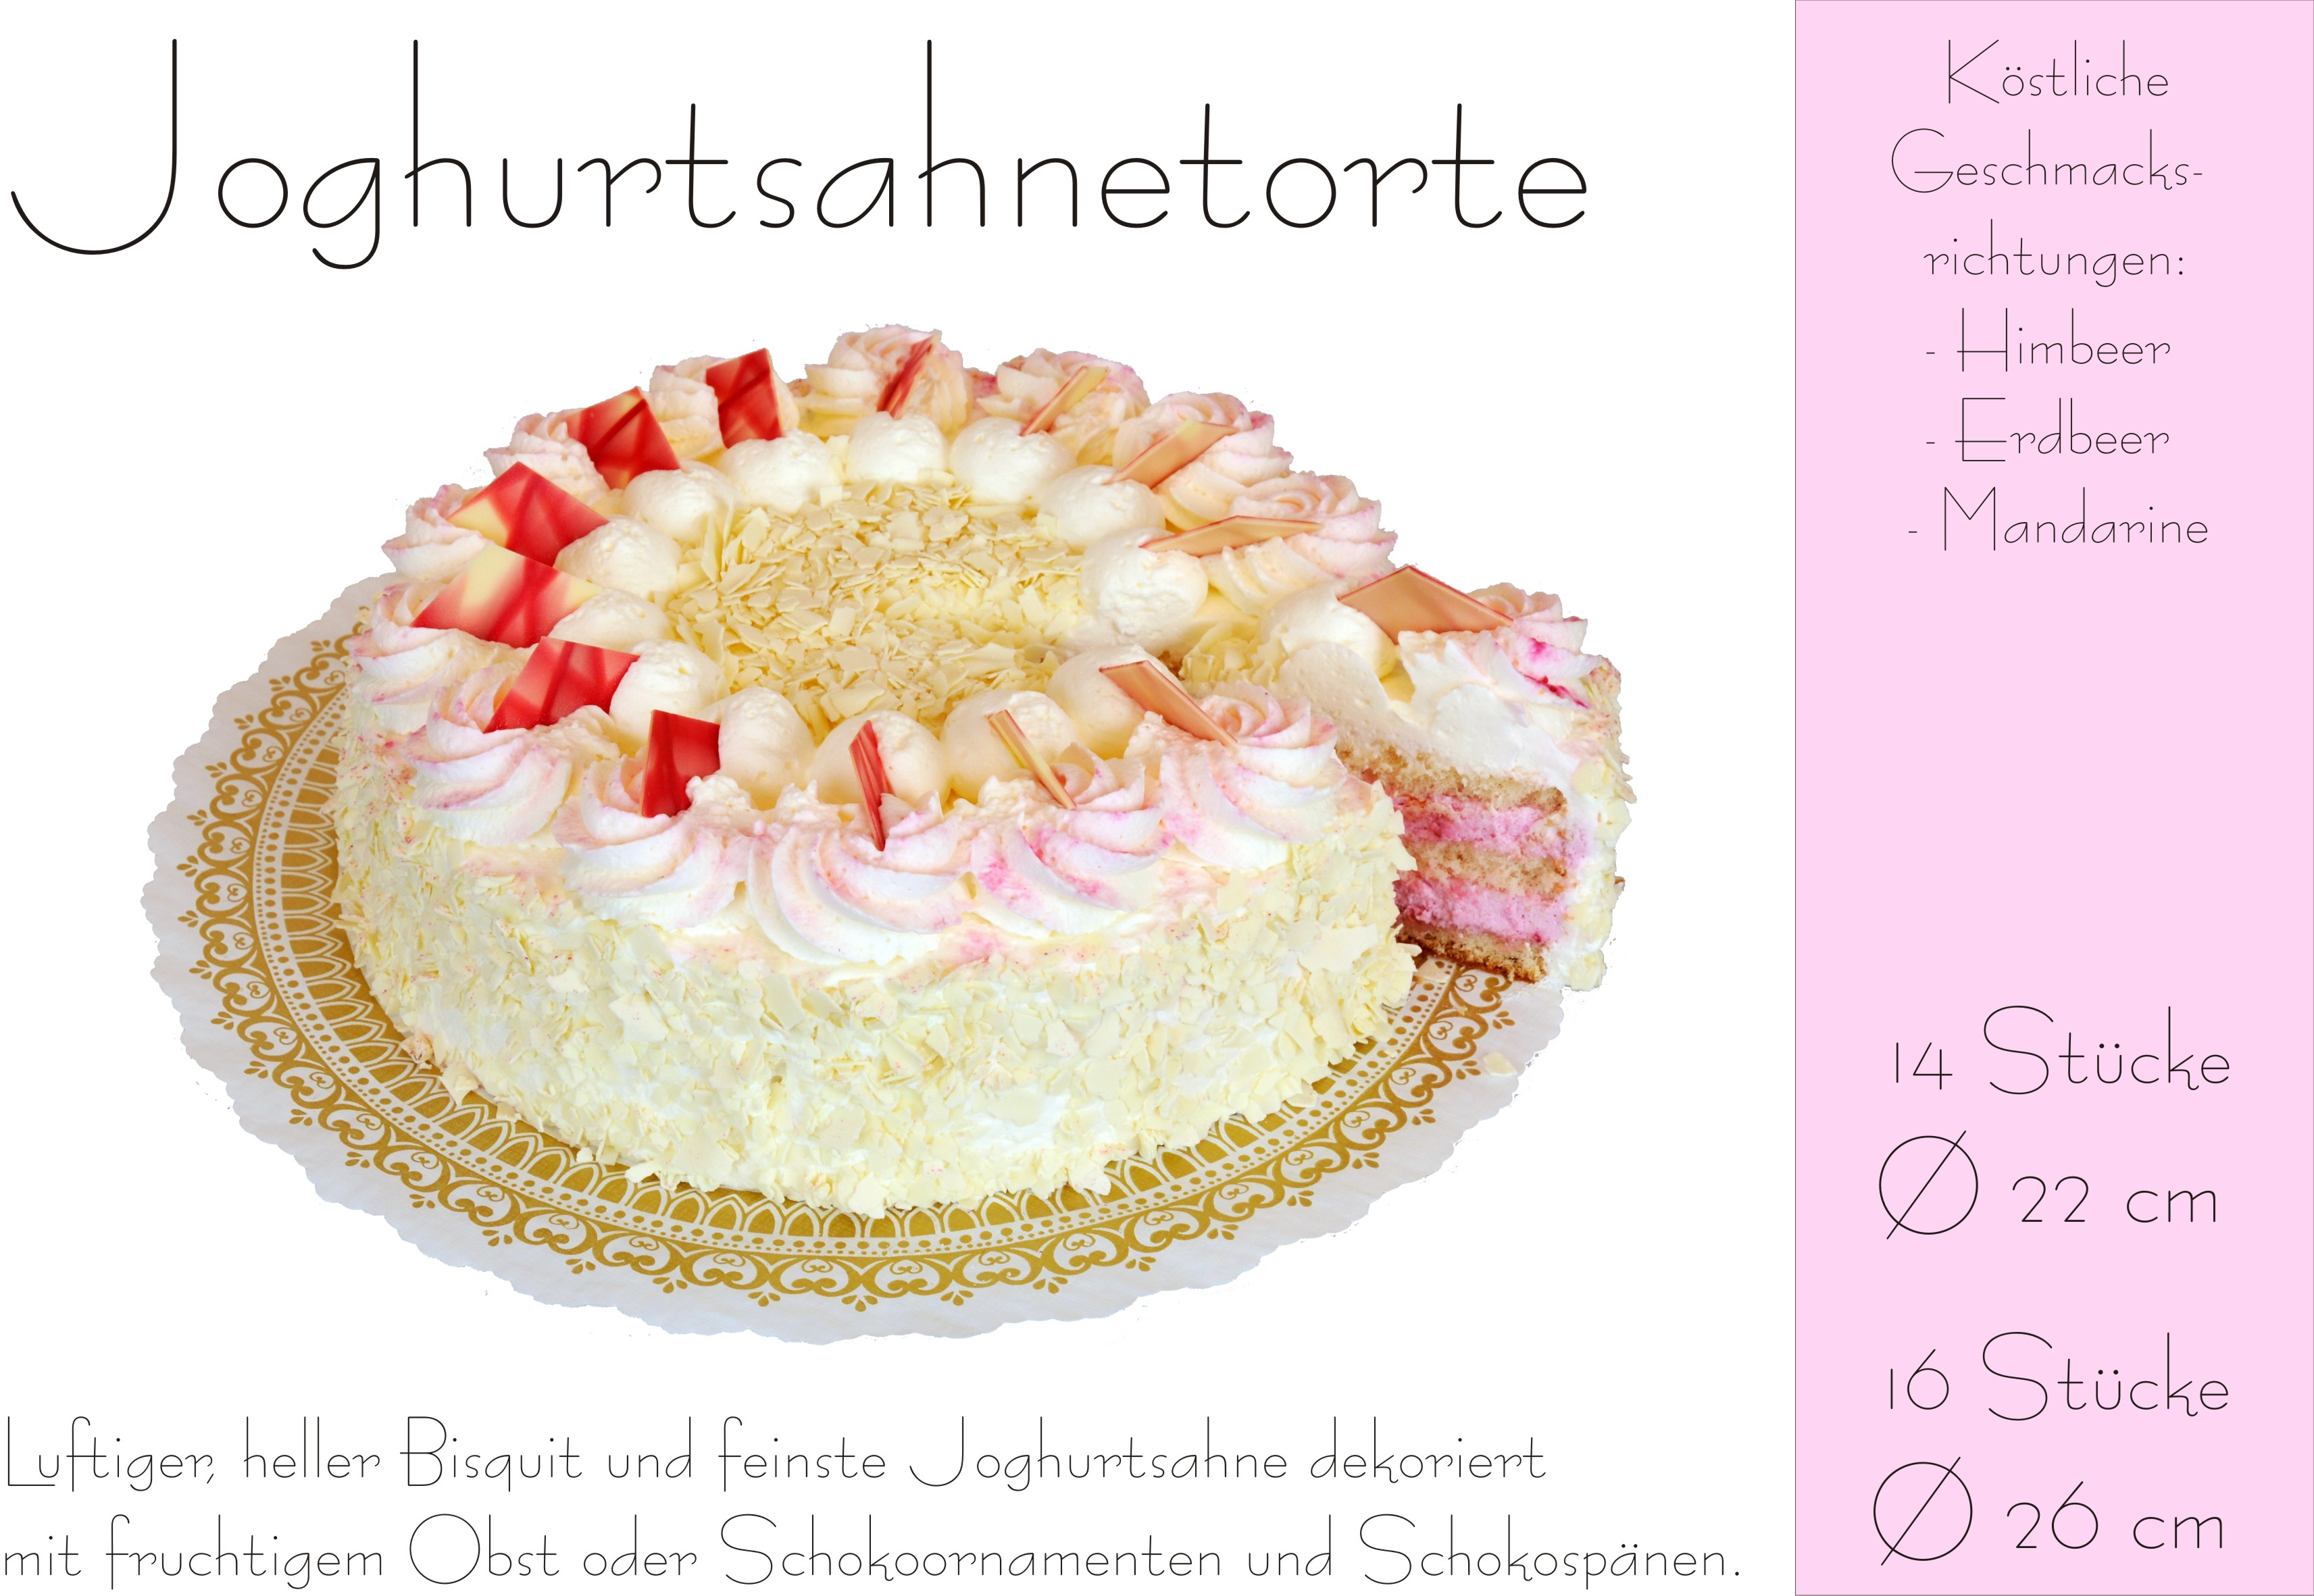 Joghurtsahnetorte normal